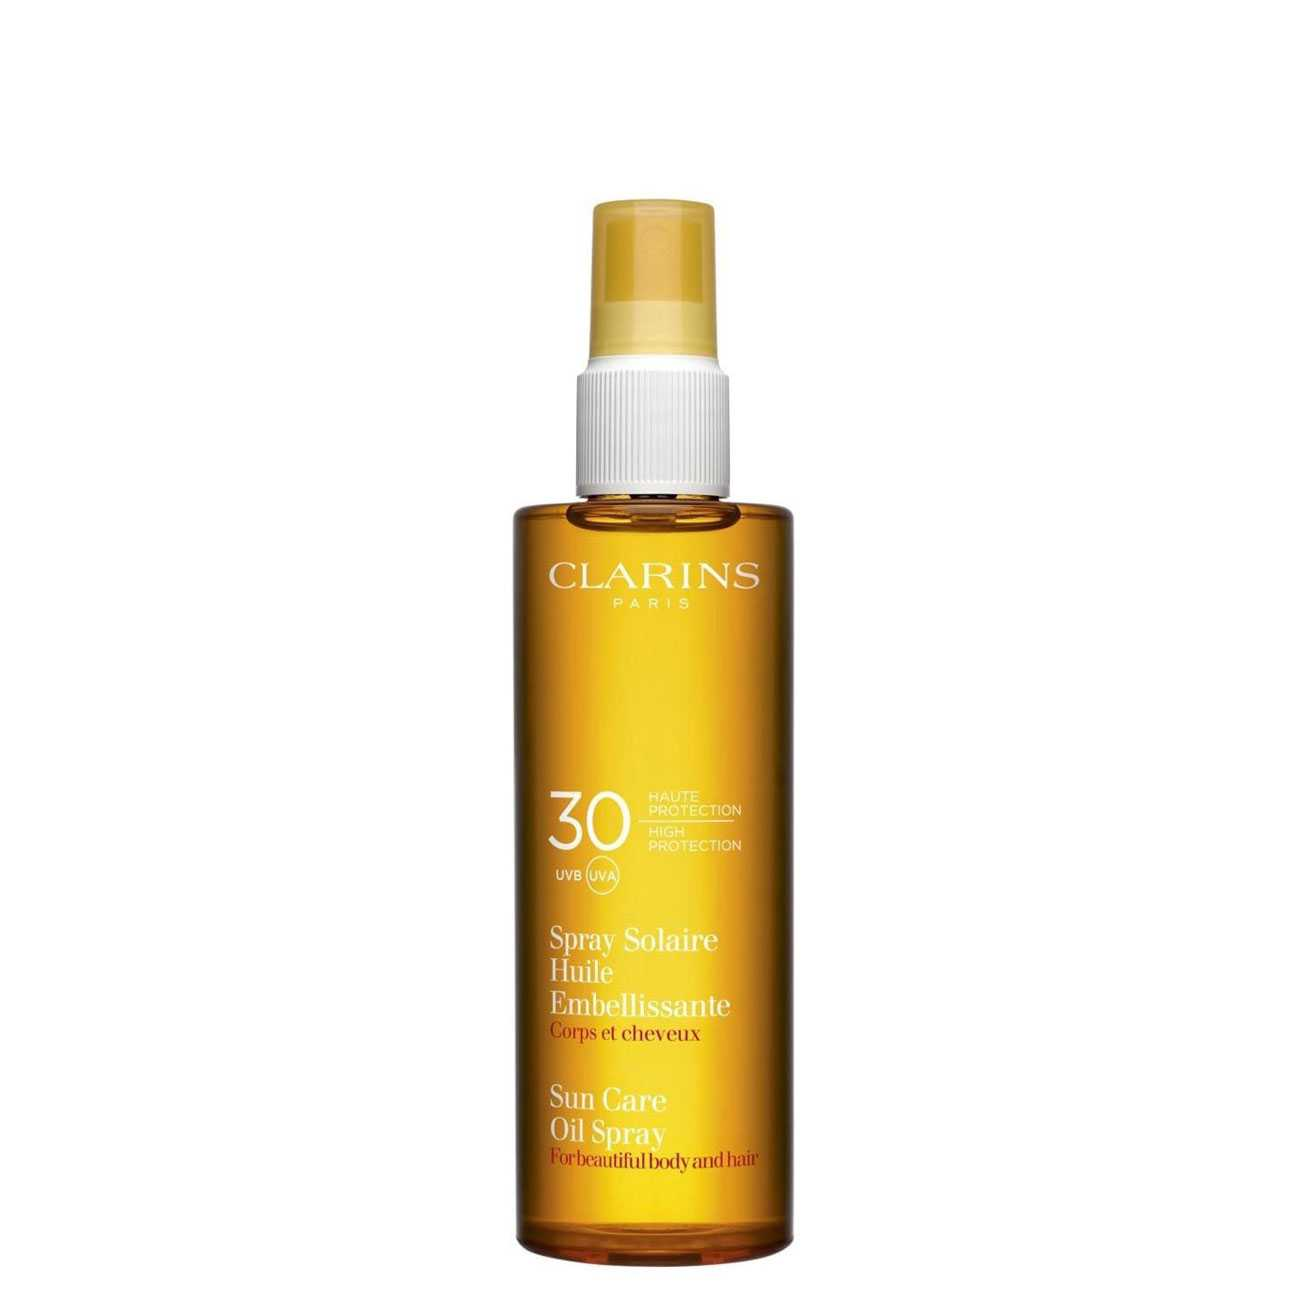 Sun Care Dry Oil For The Body And Hair 150 Ml Clarins imagine 2021 bestvalue.eu